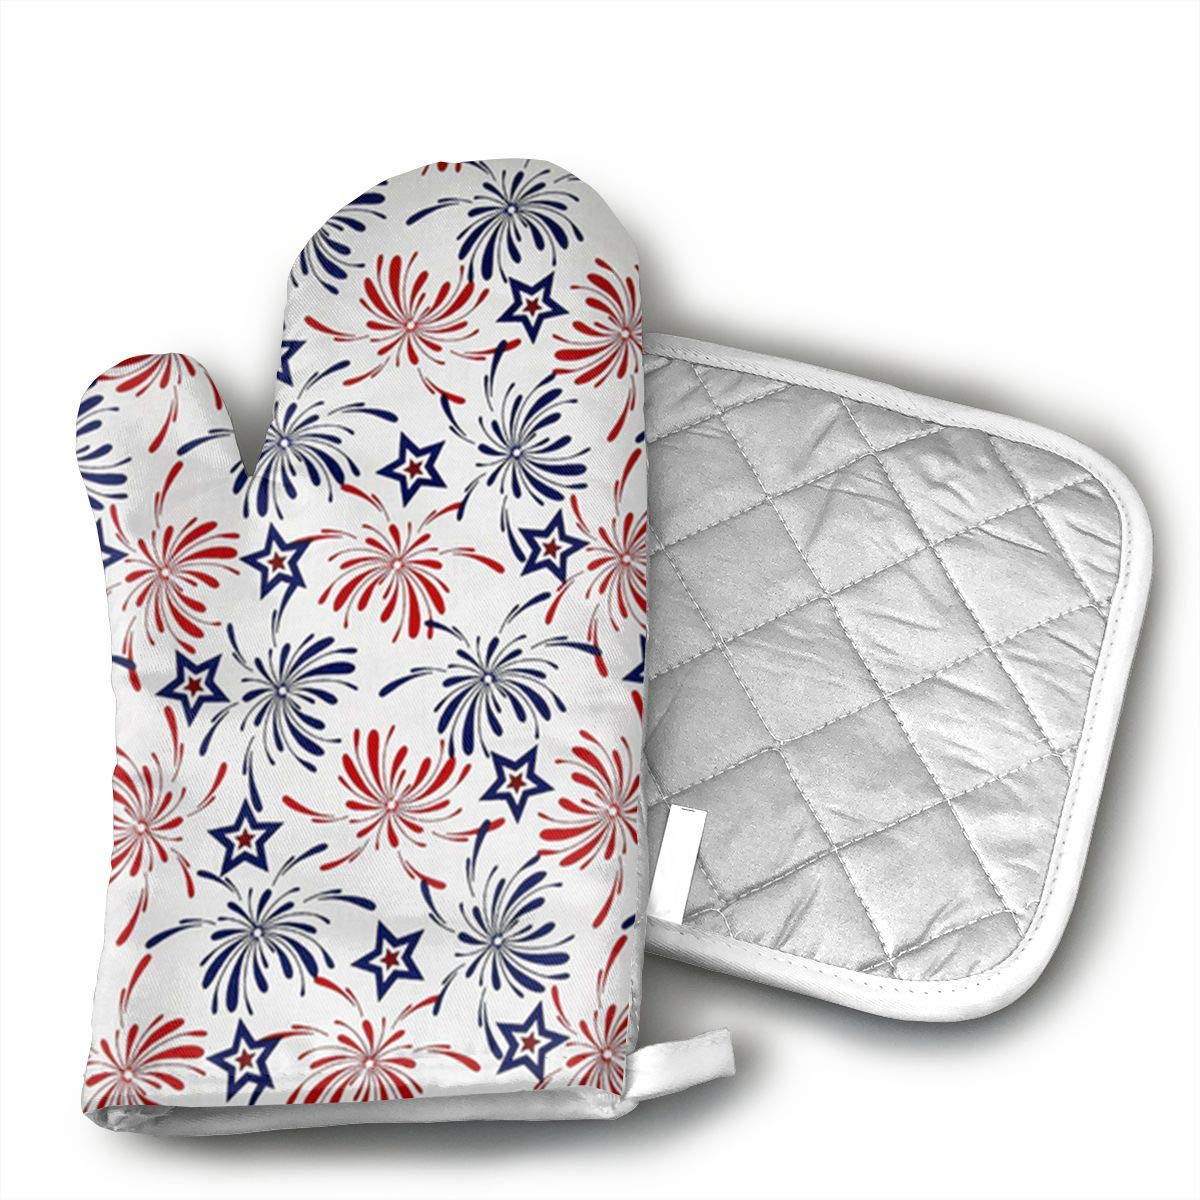 Patriotic Prints Oven Mitts, Professional Heat Resistant Microwave BBQ Oven Insulation Thickening Cotton Gloves Baking Pot Mitts with Soft Inner Lining